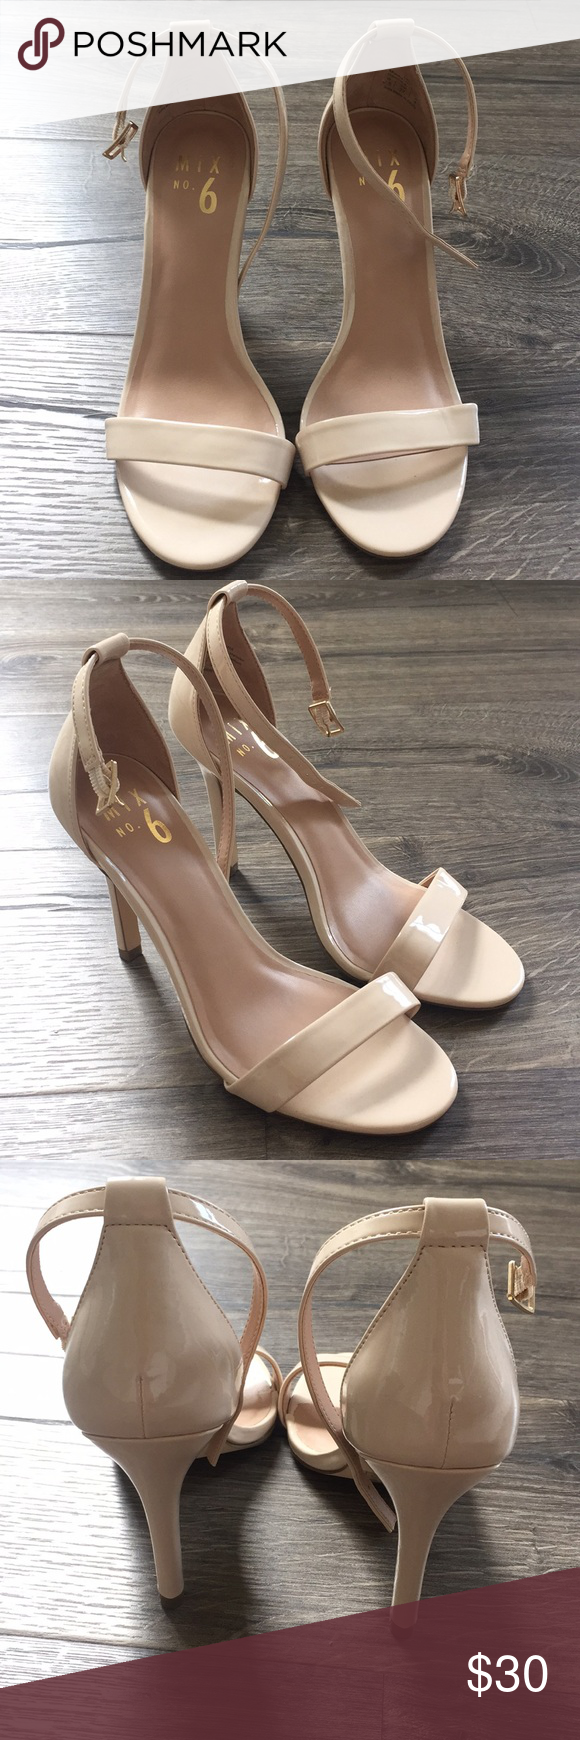 7a3594b82 6 beige patent leather Lina heels Never worn beige patent leather open